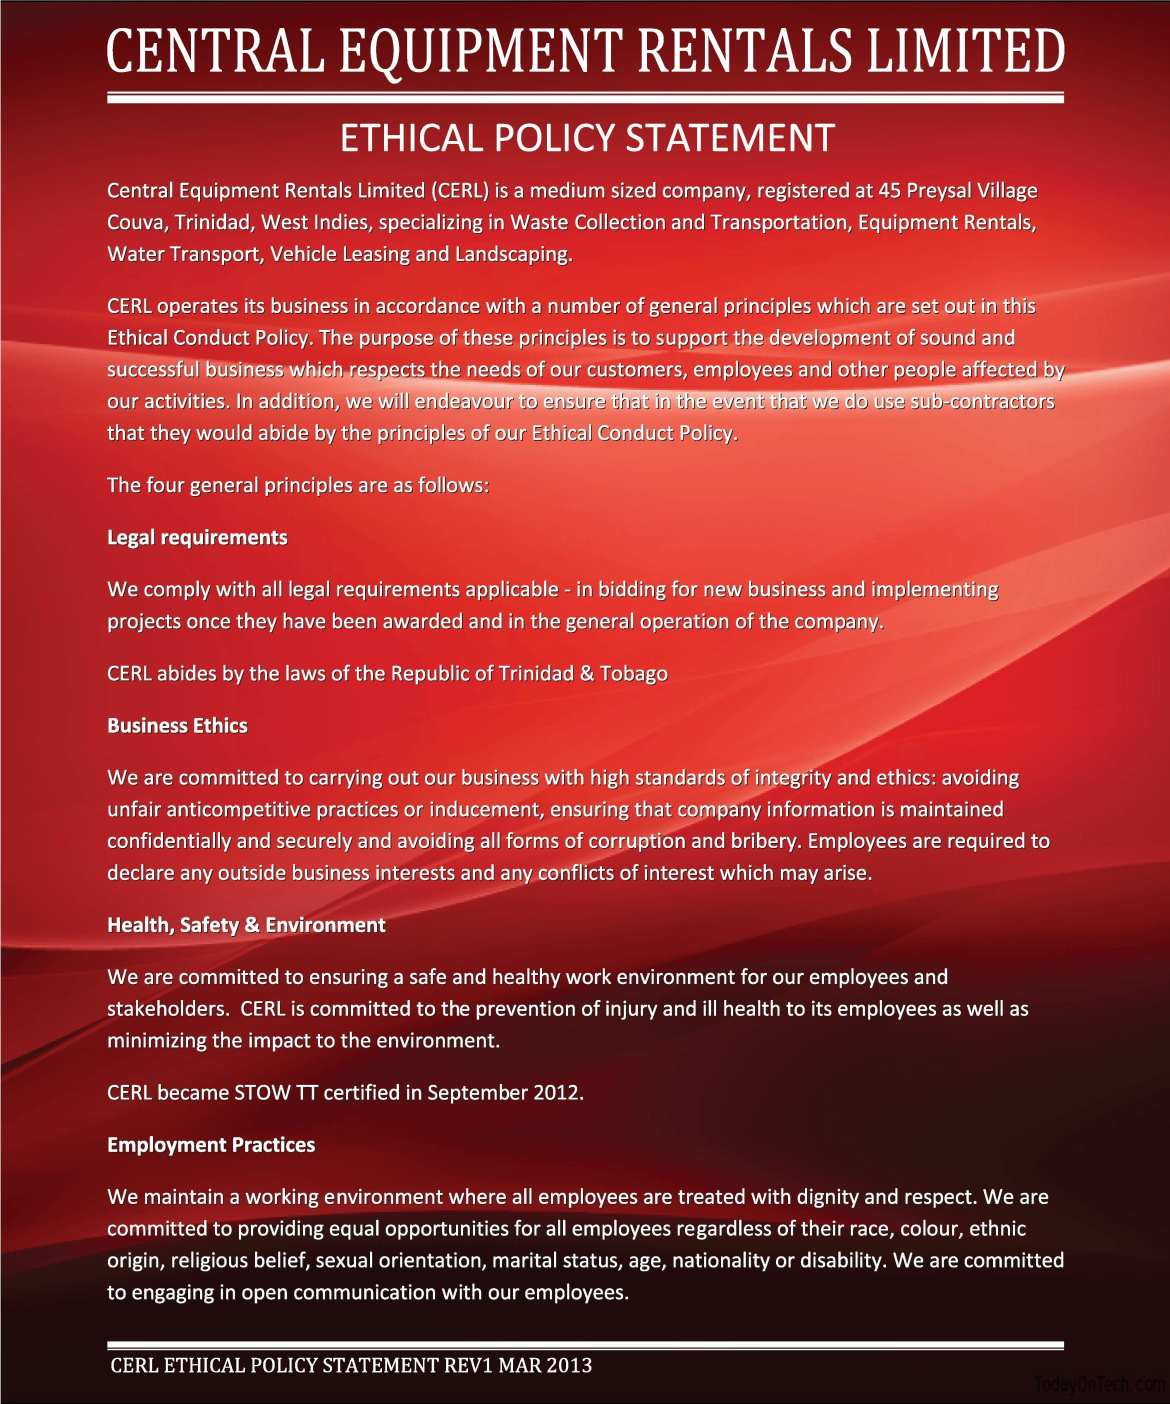 ethical-policy-statement